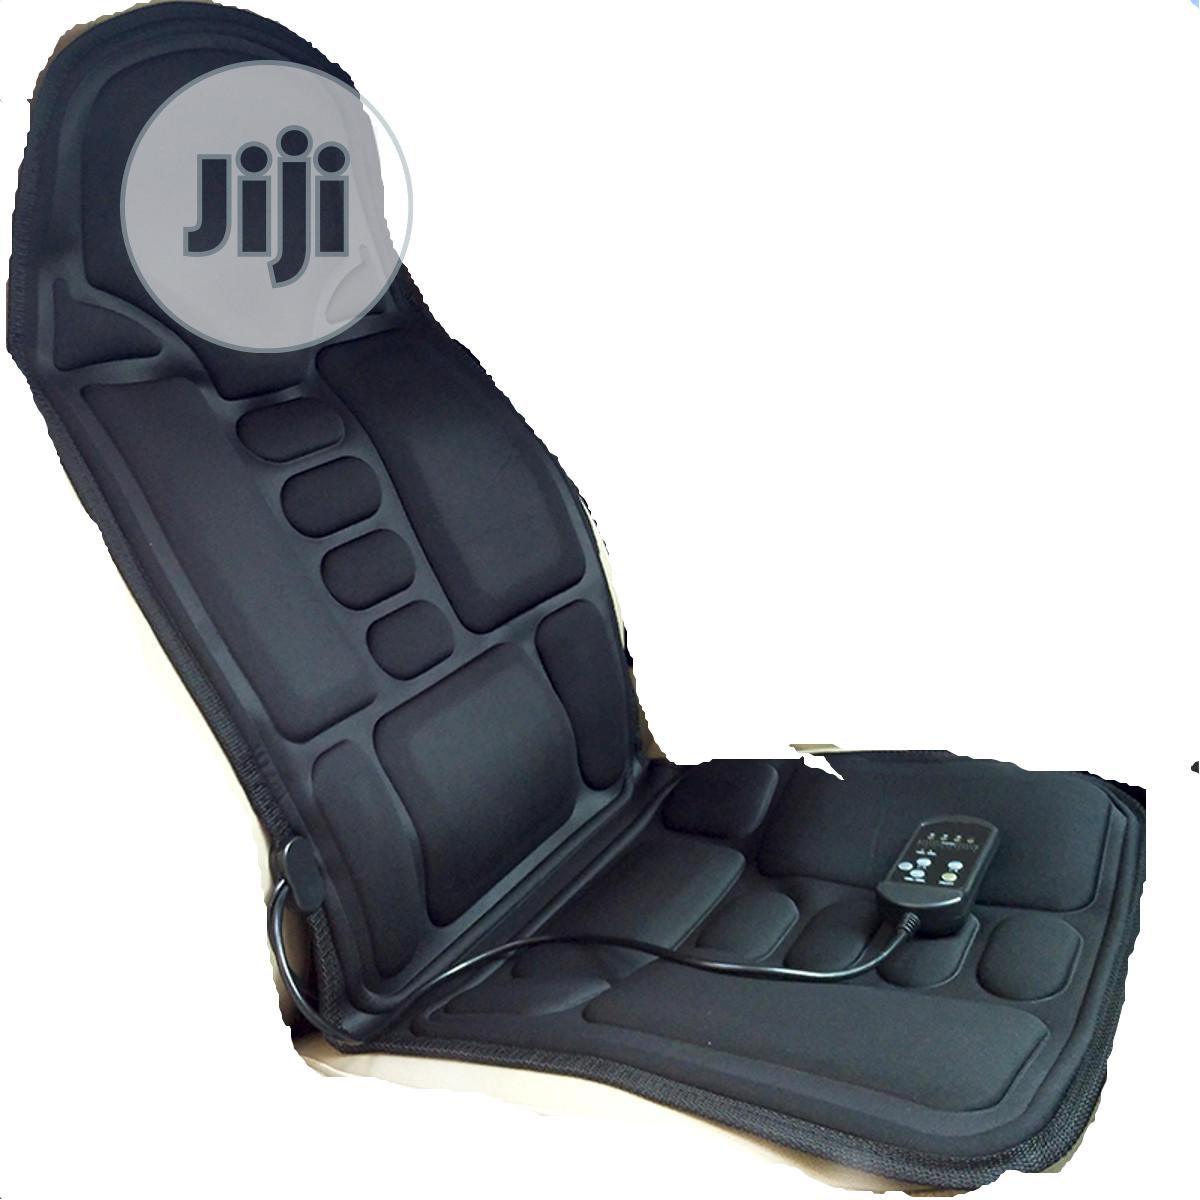 High Quality Car Seat Massager For Body Massager